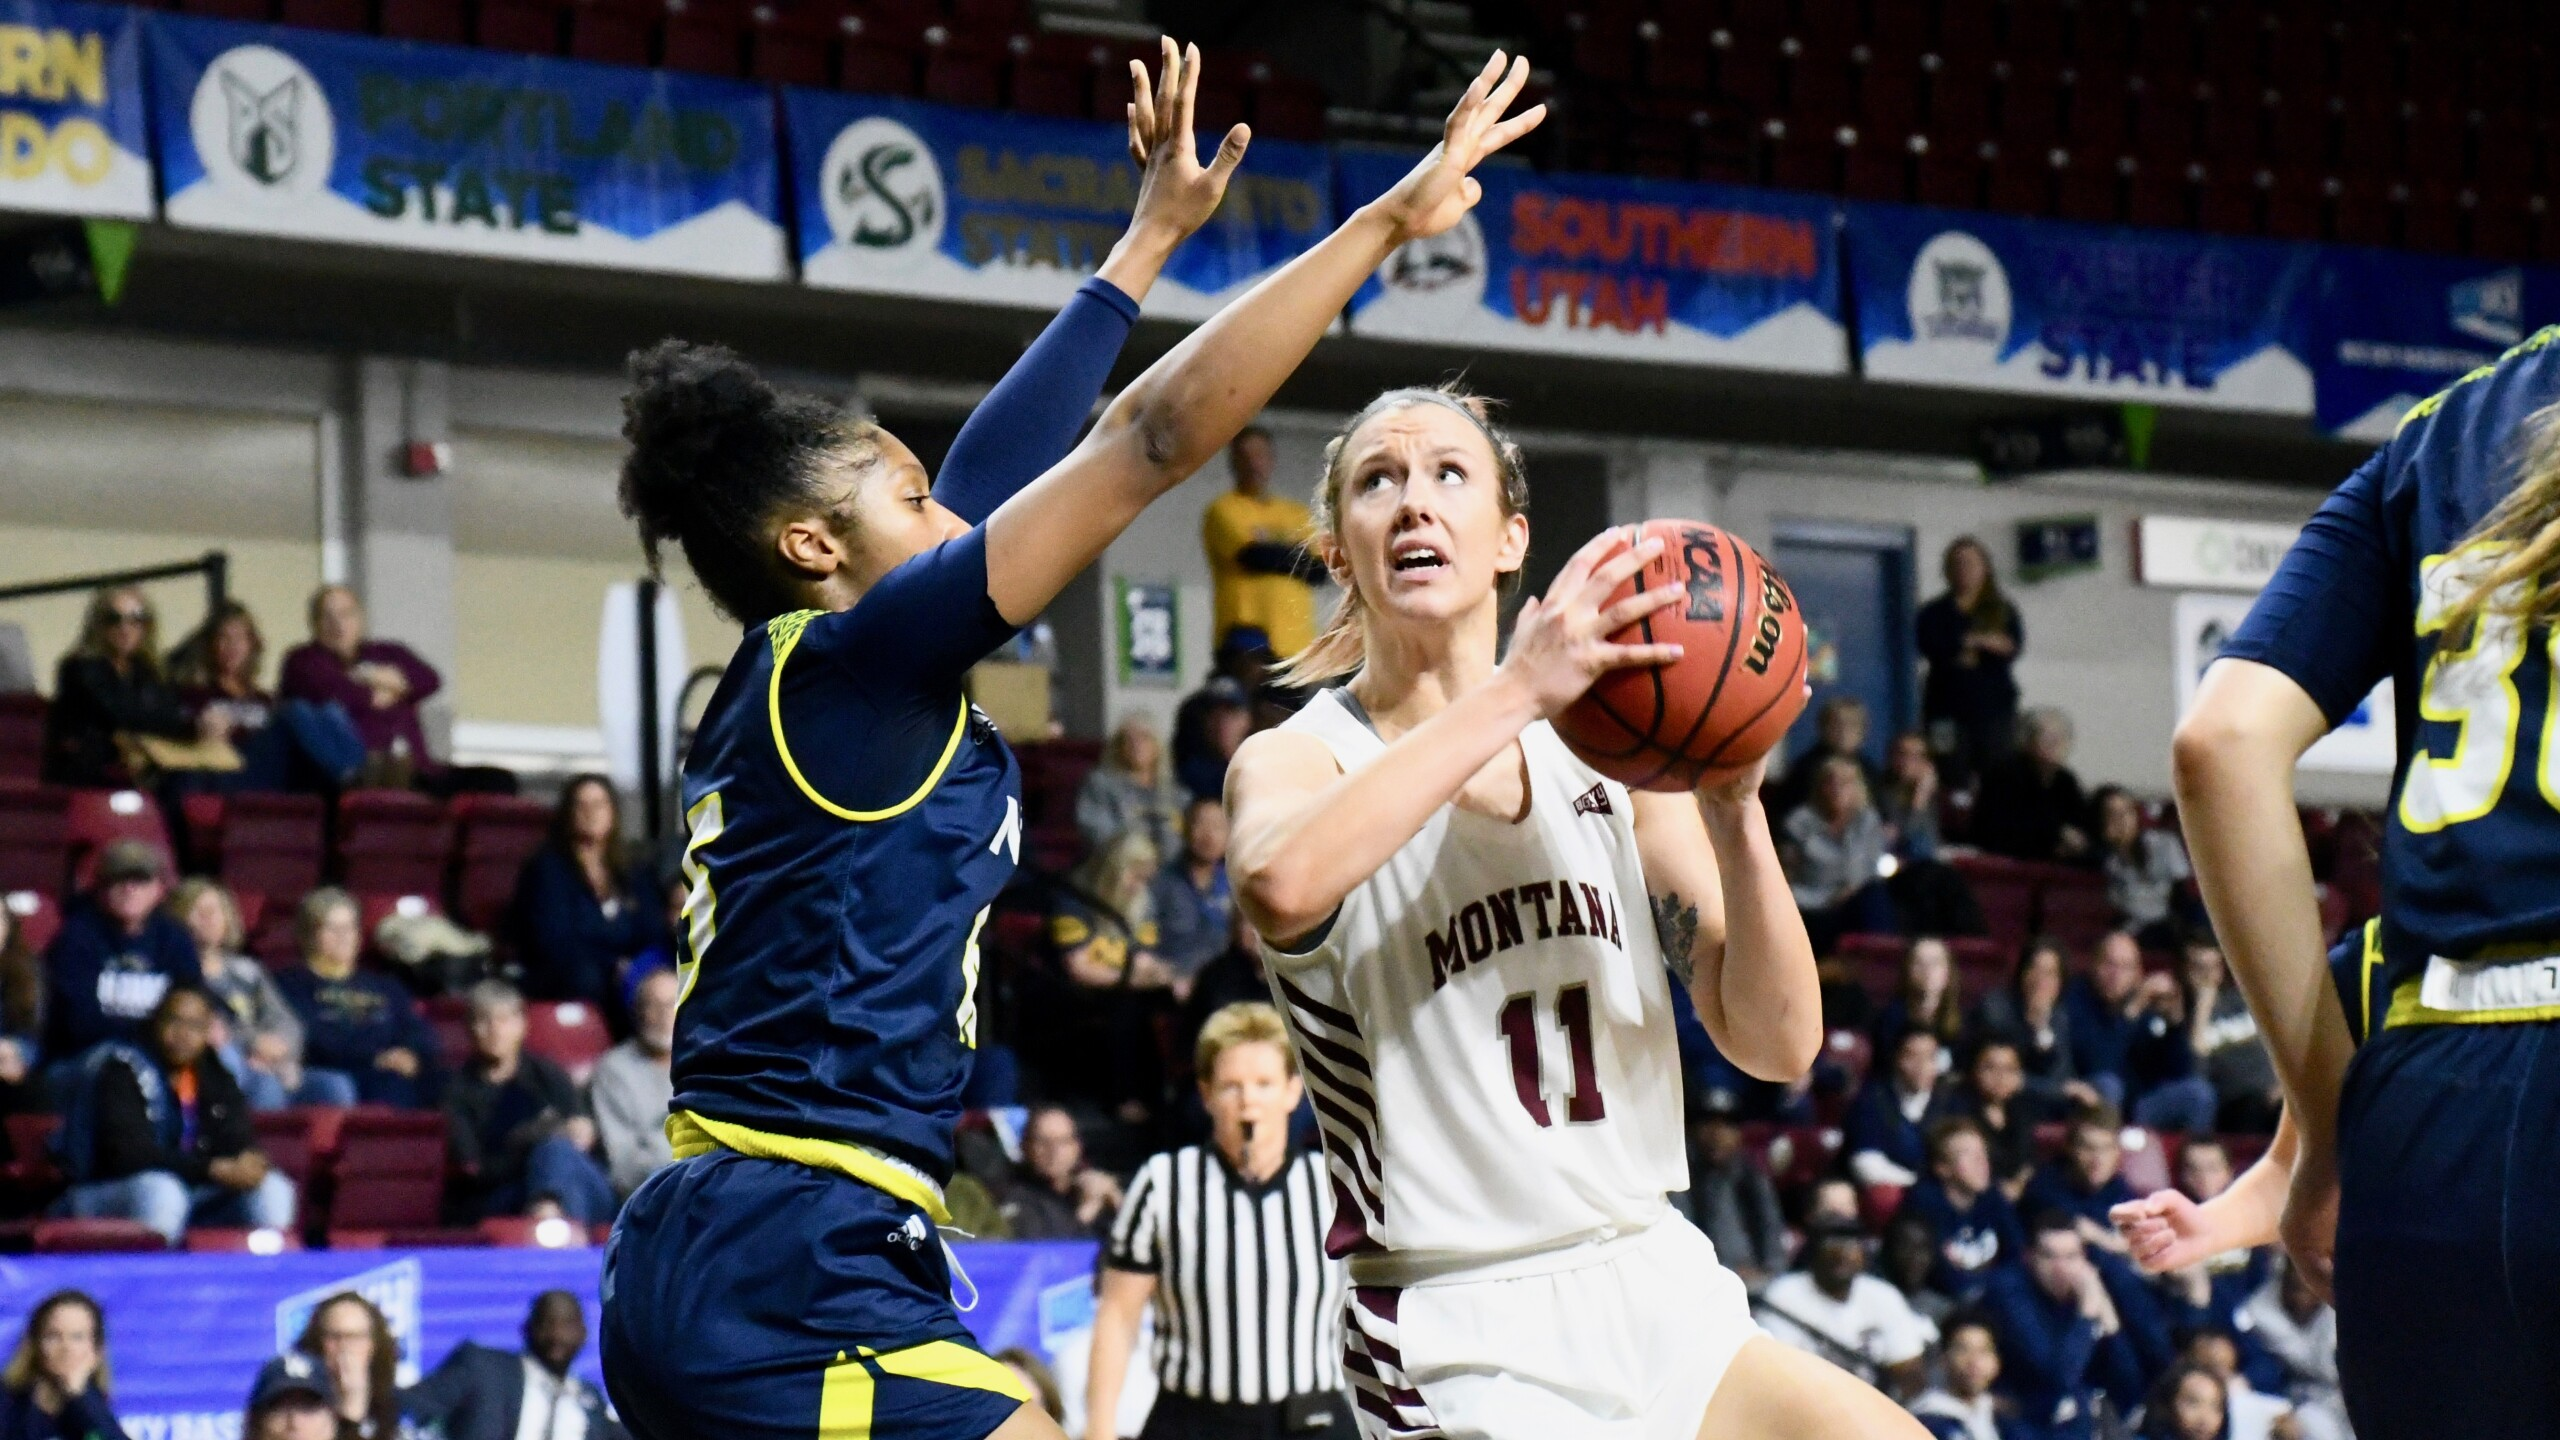 Montana vs. Northern Arizona - Big Sky Conference women's basketball quarterfinals